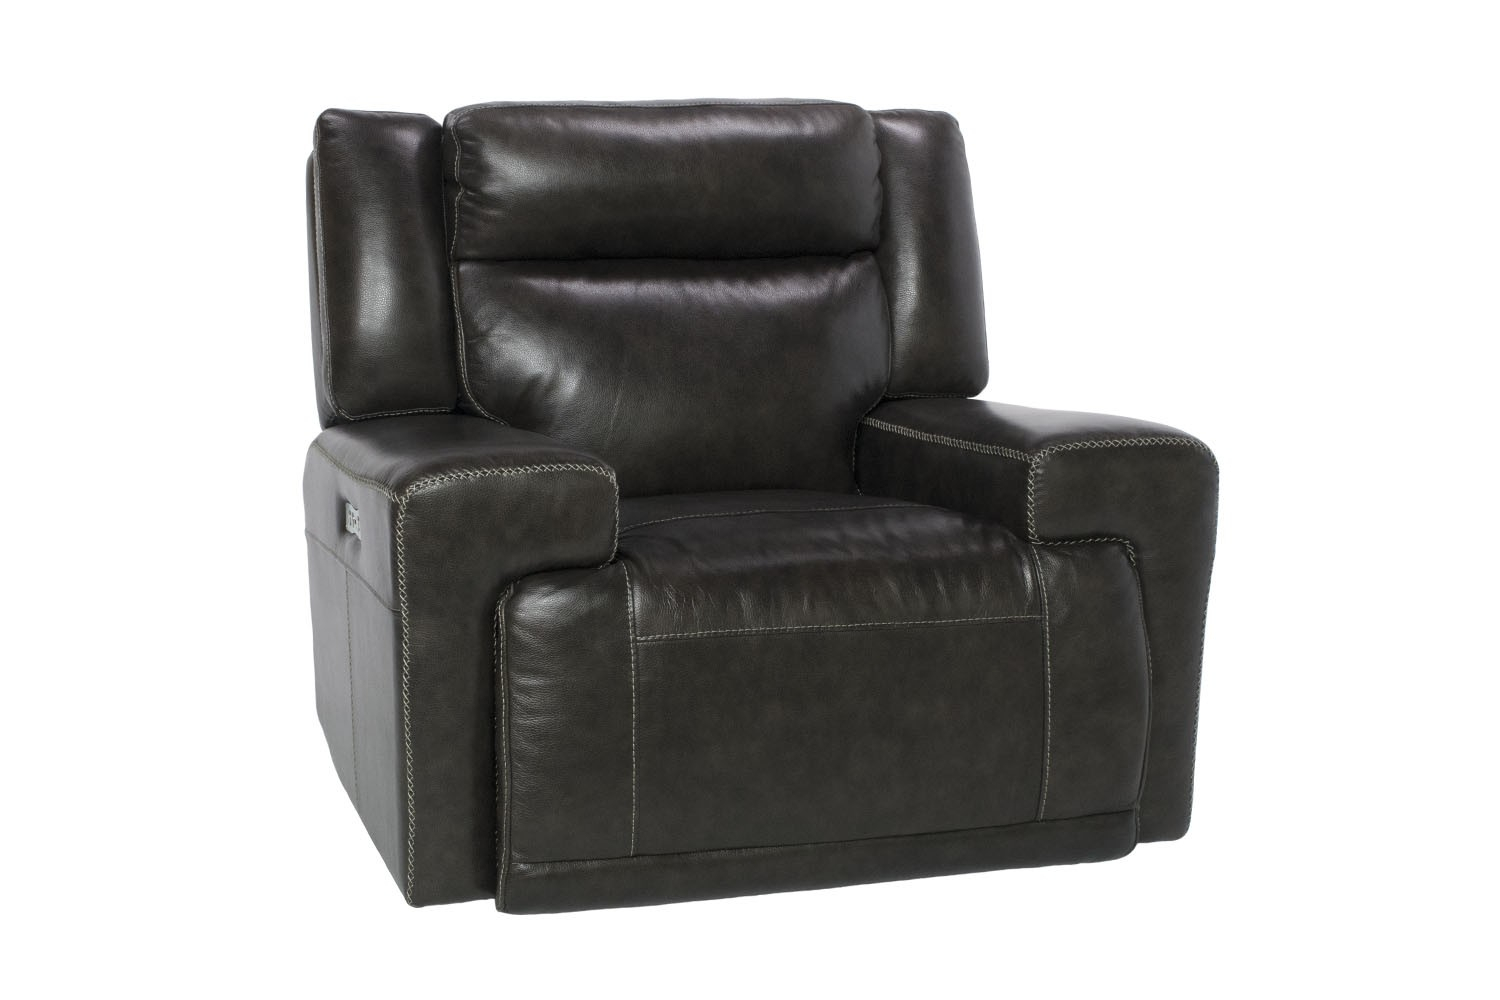 Recliners | New Year's Sale On 500+ Products Throughout Hercules Chocolate Swivel Glider Recliners (View 17 of 20)